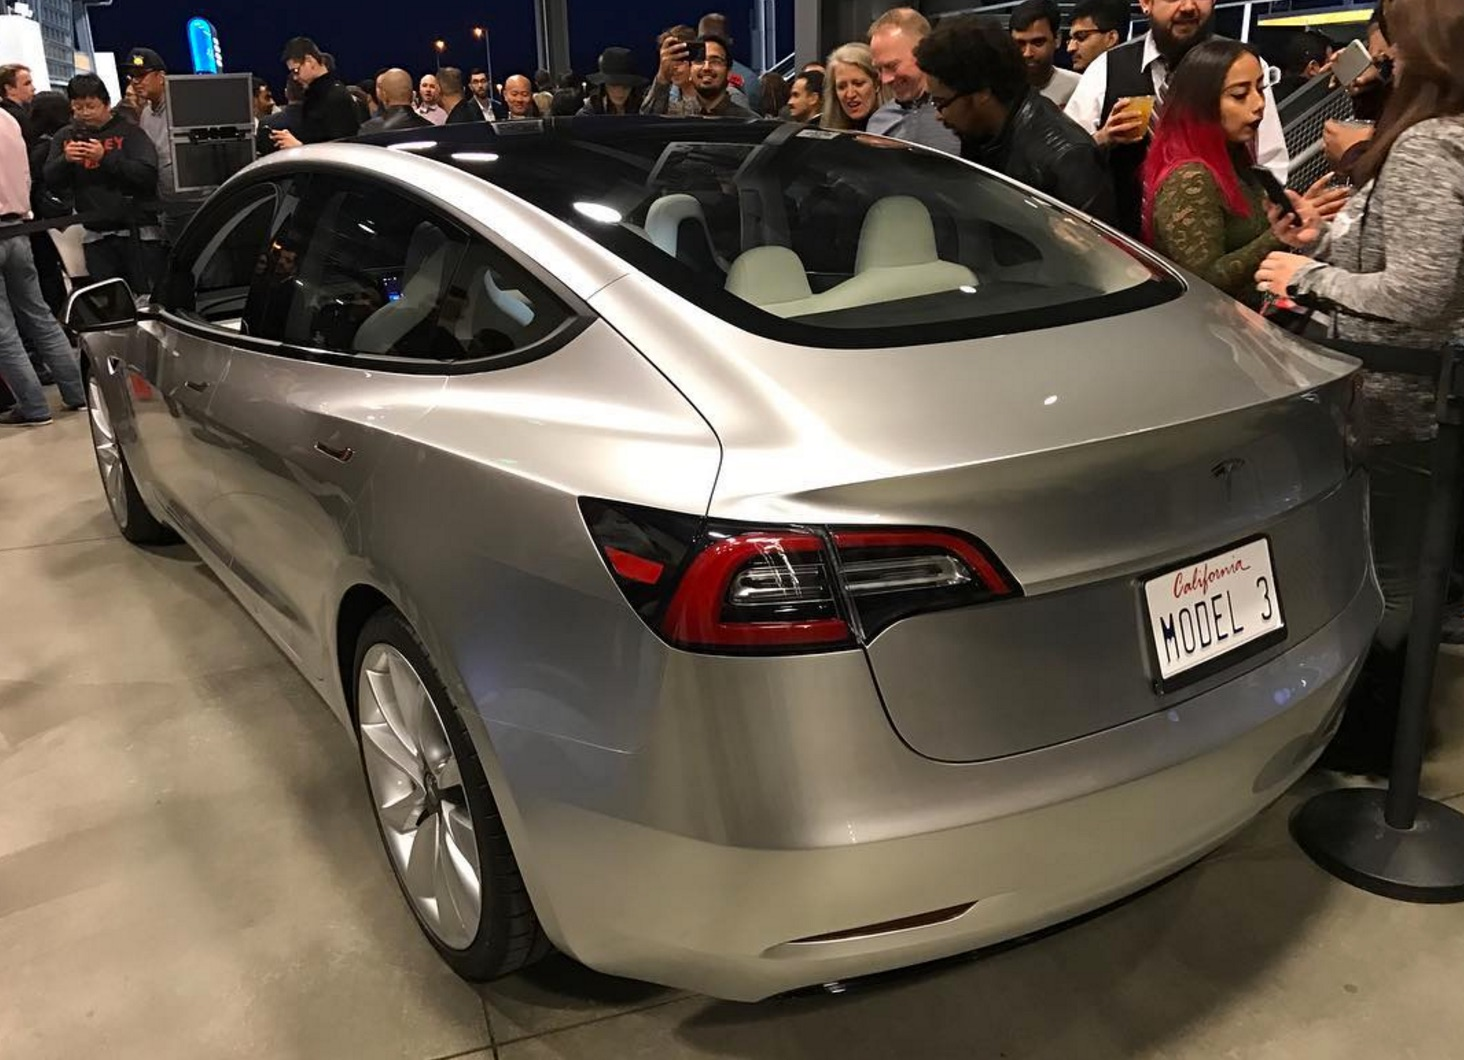 Silver Tesla Model 3 rear [Credit: tony.siress via Instagram]